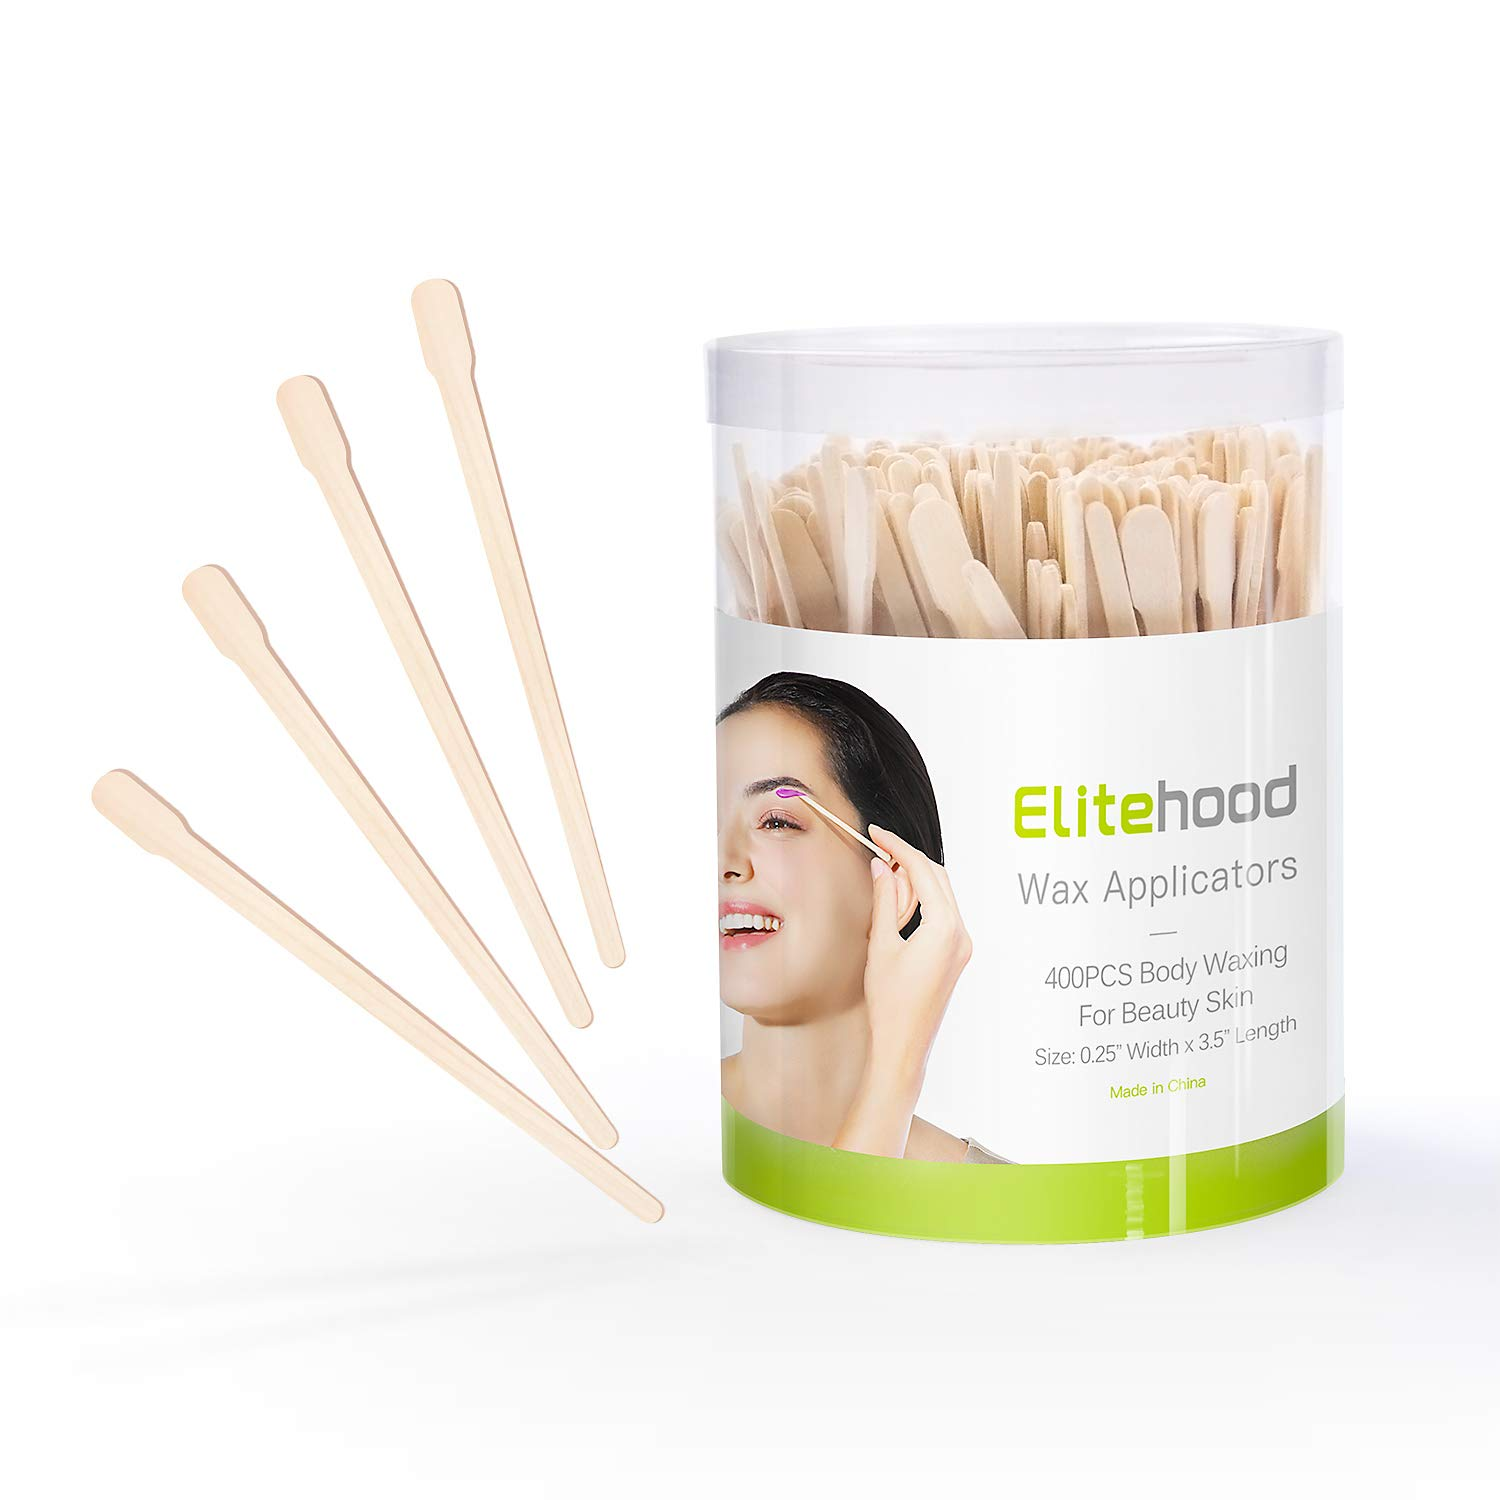 Elitehood 400 Pack Waxing Sticks Small Eyebrow Wax Sticks Wax Spatulas Small Wooden Waxing Applicator Sticks for Eyebrows & Face Hair Removal Sticks, Storage Containers bundled